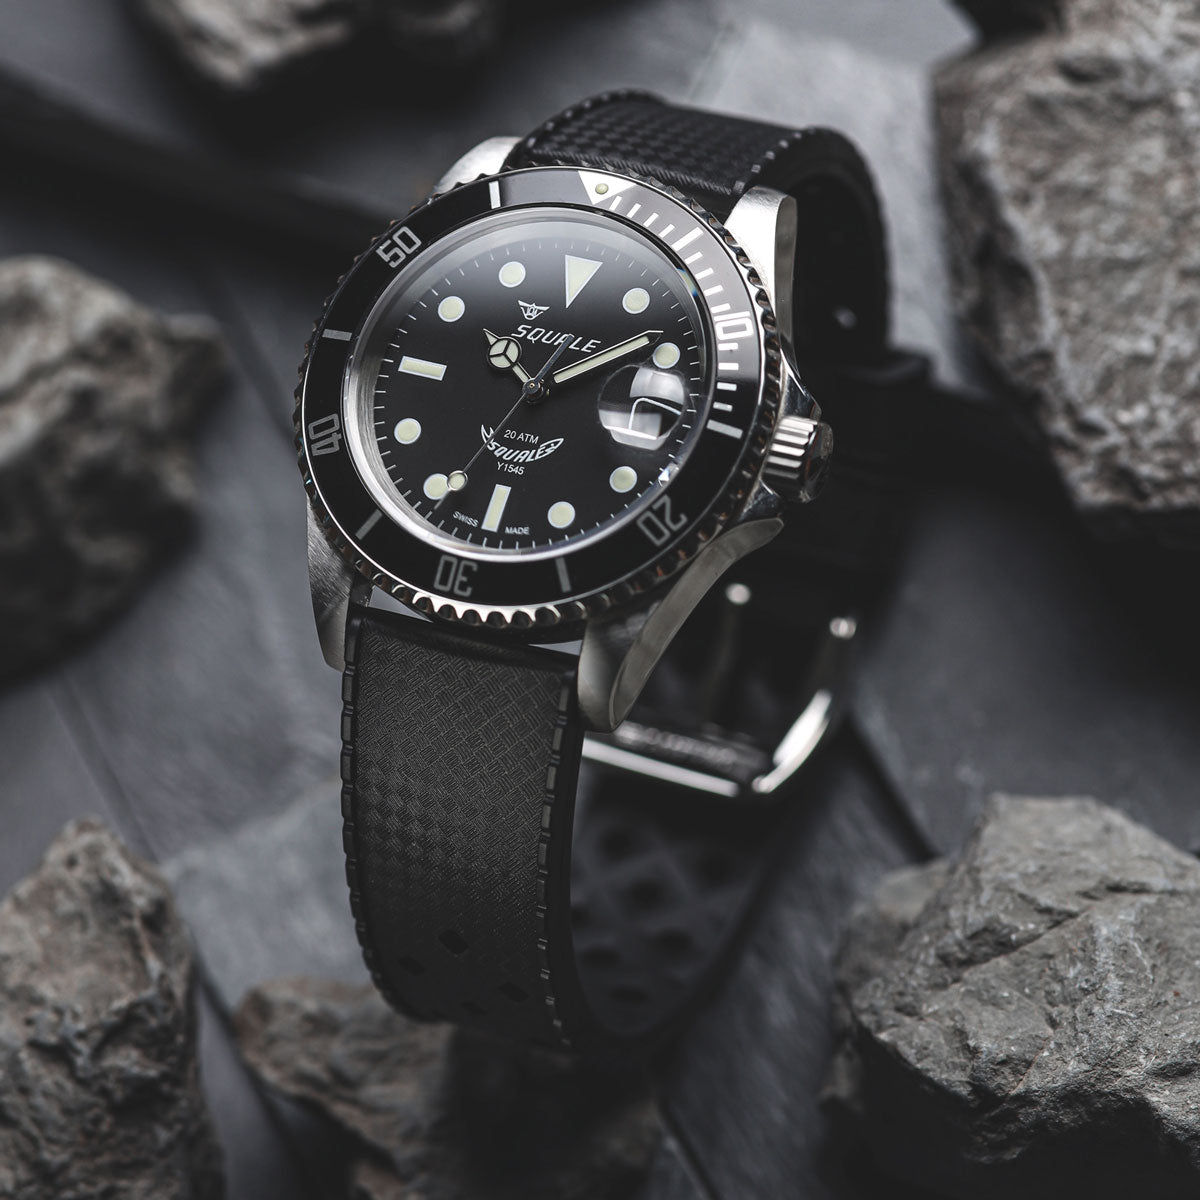 ZULUDIVER Modern Tropical Watch Strap (MkII) Silver Hardware